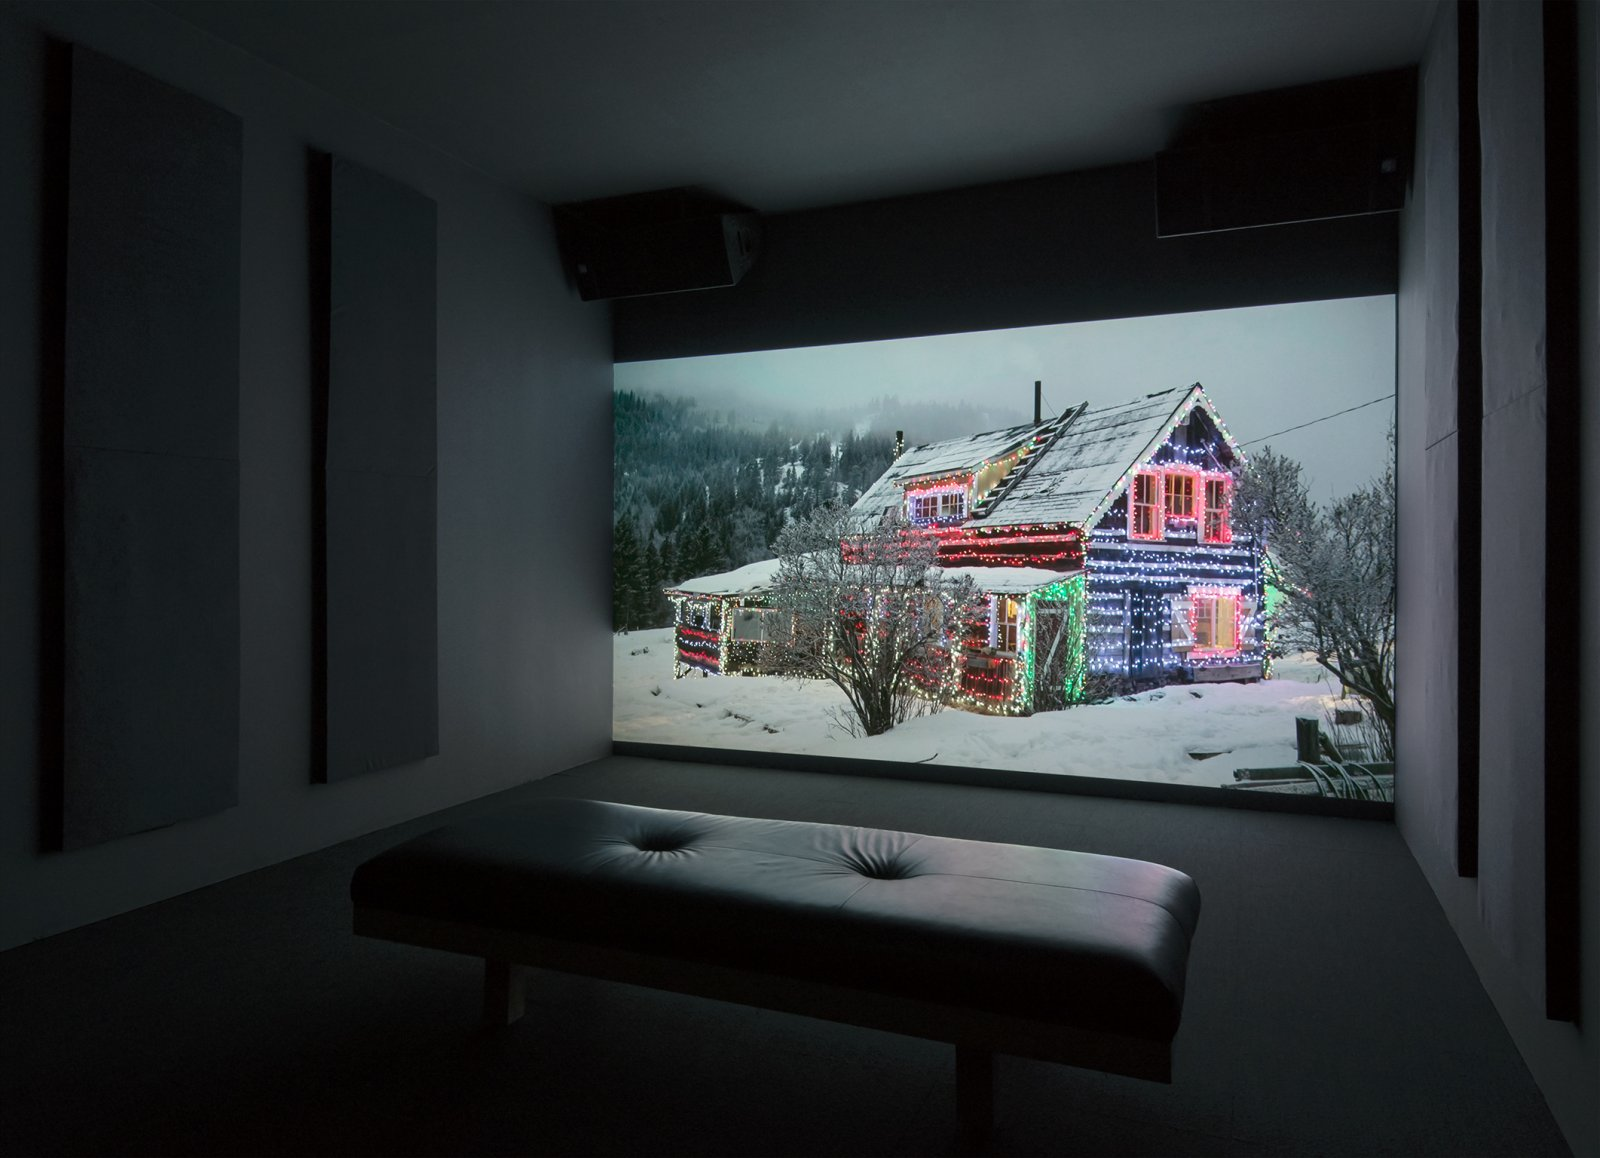 Kevin Schmidt, EDM House, 2014, HD video, 16 minutes, 54 seconds. Installation view, The Commons, Kamloops Art Gallery, Kamloops, Canada, 2015